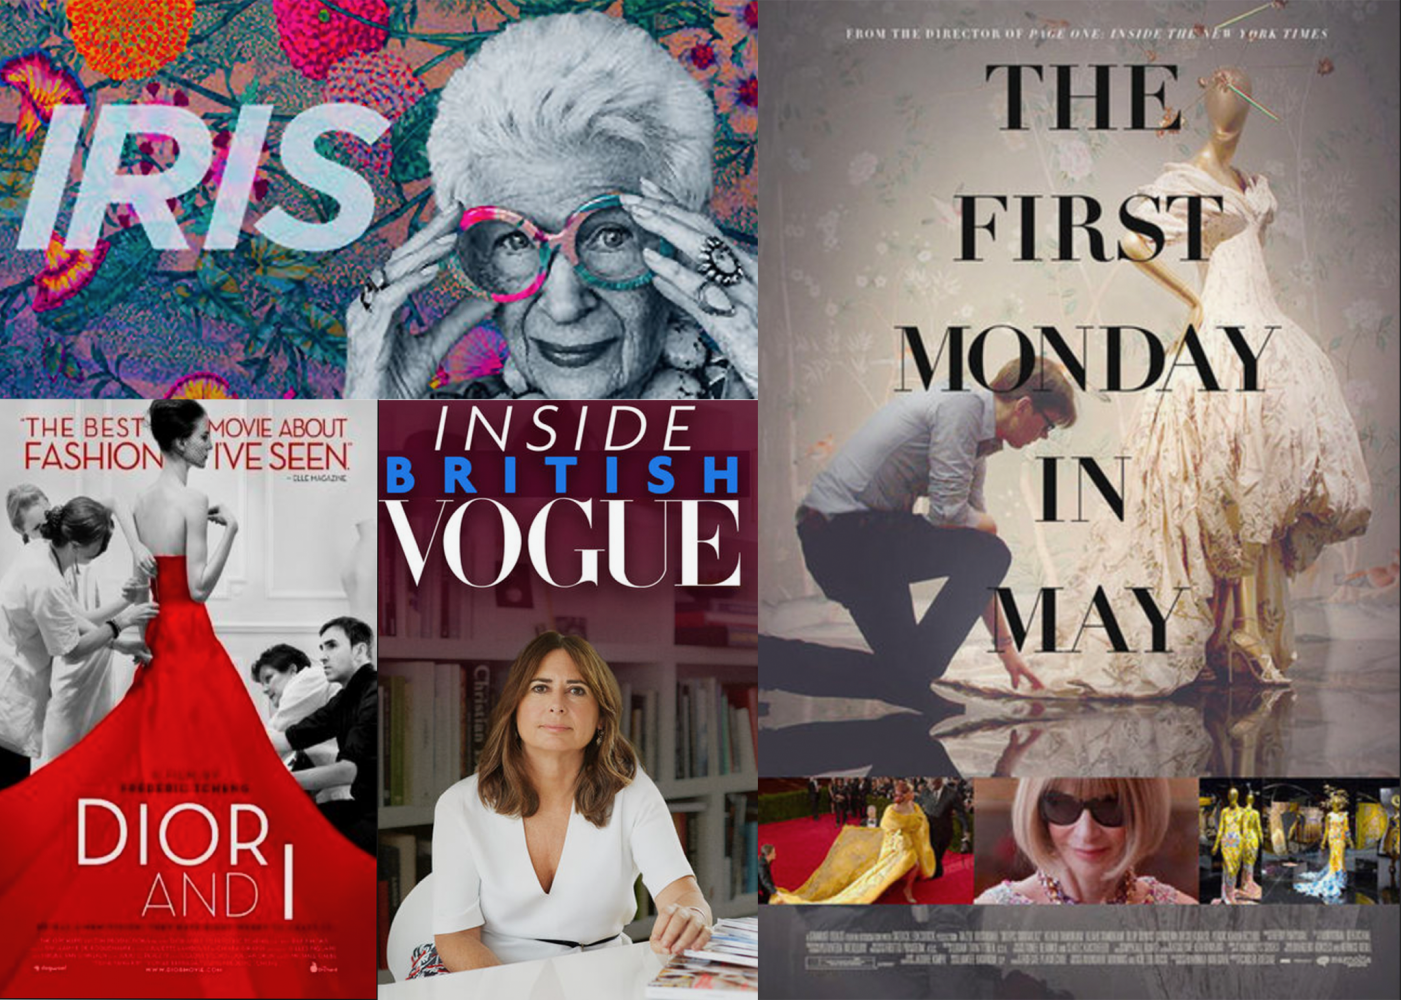 Binge on some fashion-focused shows on Netflix, including